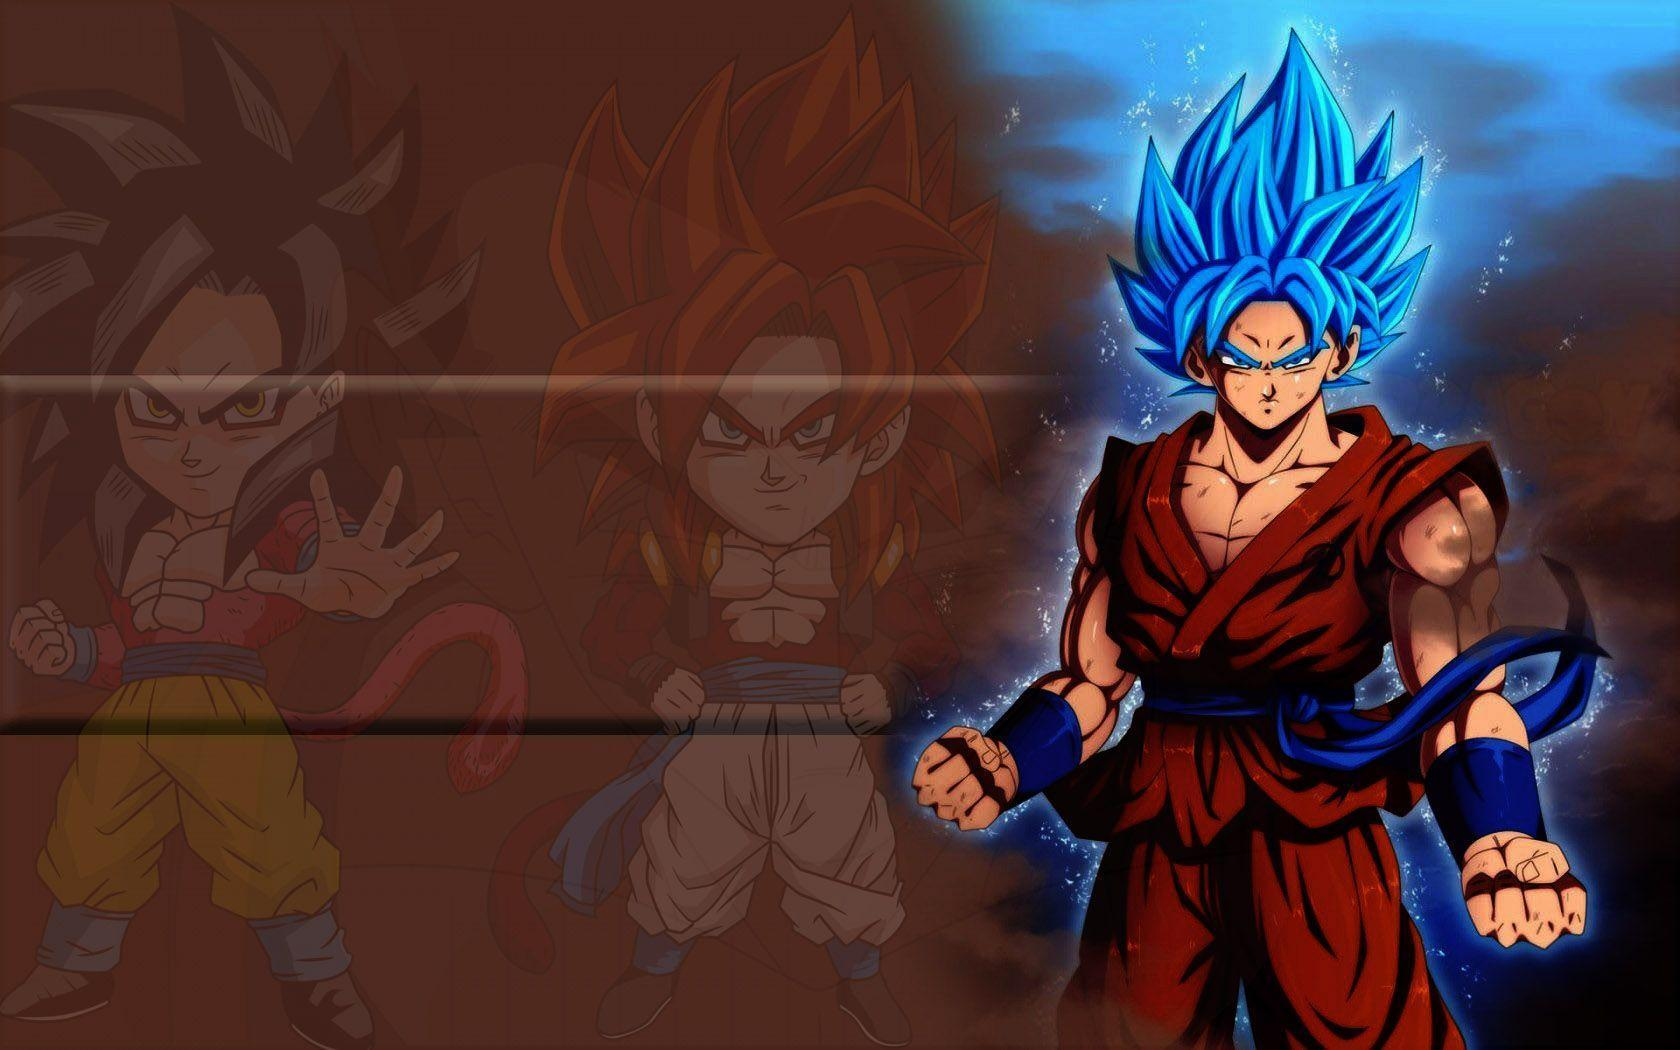 Dragon Ball Super Wallpaper Android: Dragon Ball Super Wallpapers